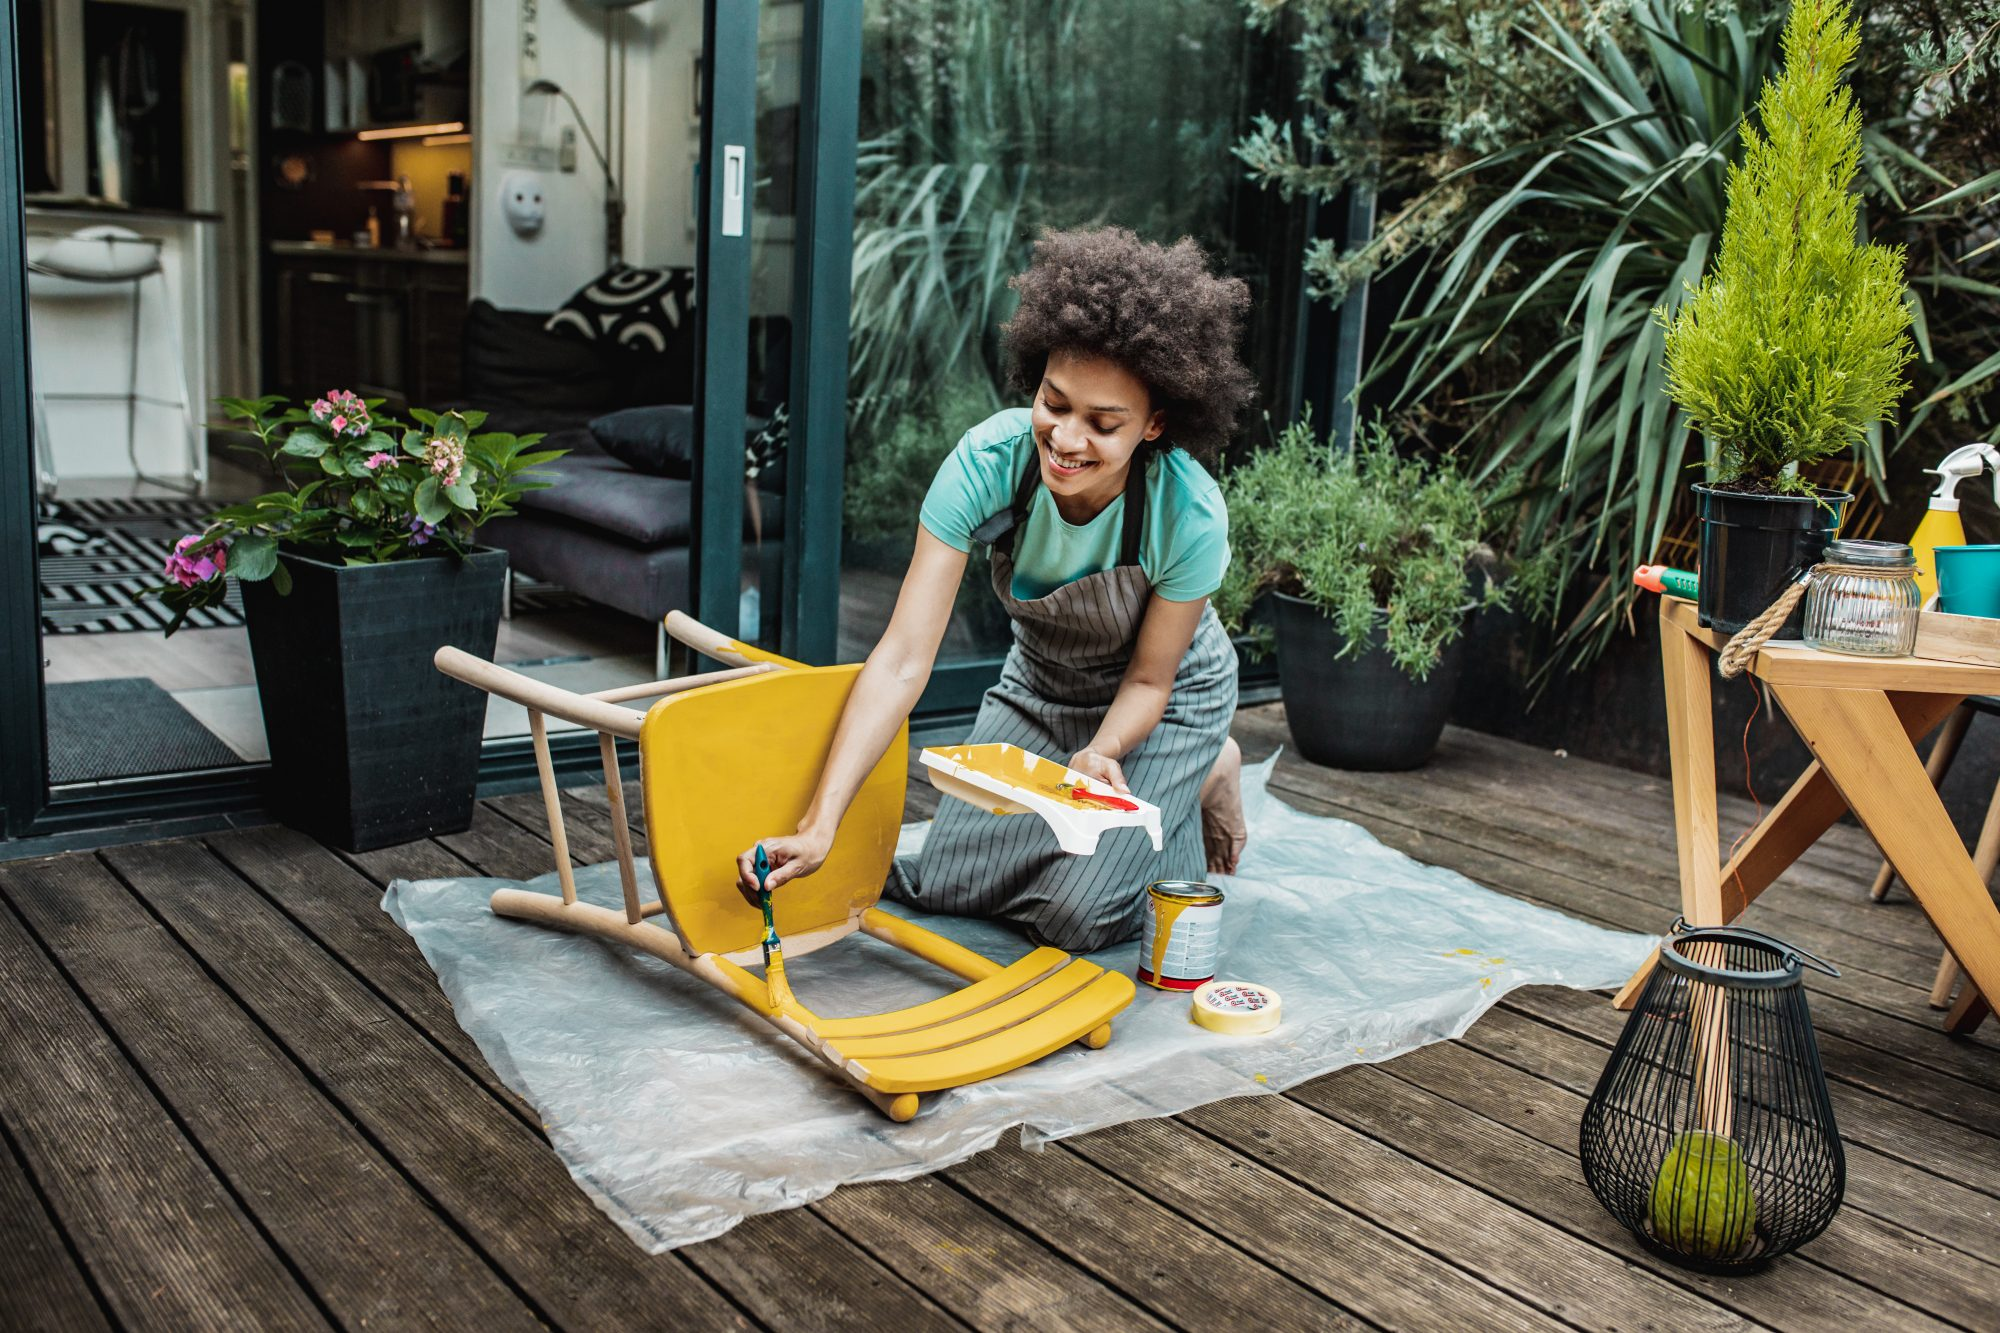 woman painting chair yellow outside on patio